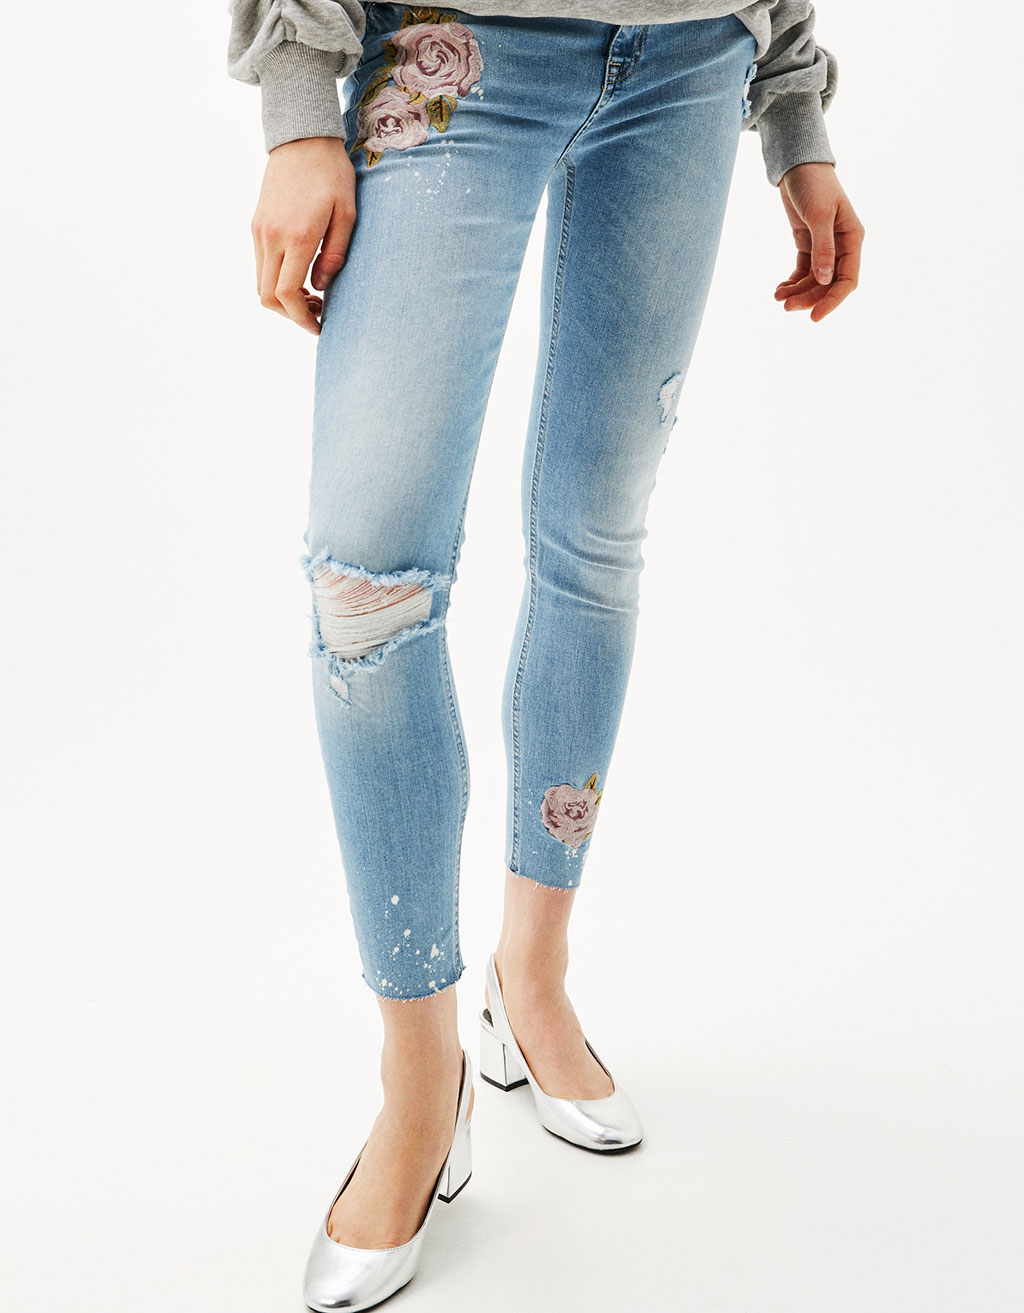 Skinny fit jeans with embroidered roses